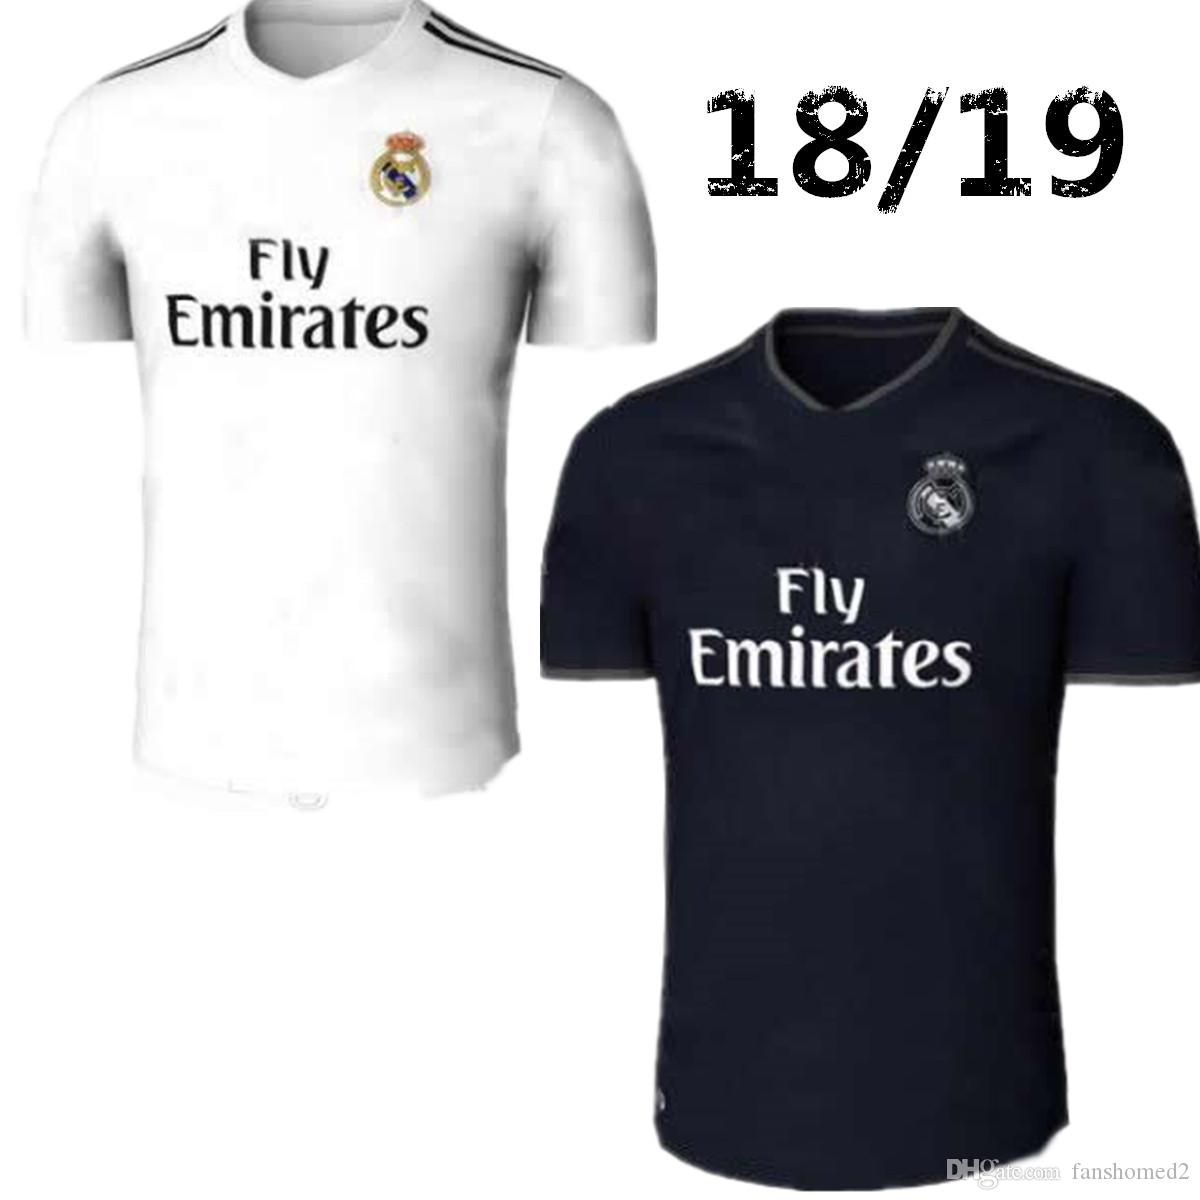 2019 18 19 Real Madrid Soccer Jerseys Home Away Romaldo 2018 2019 BALE  ASENSIO MARCELO KROOS ISCO BENZEMA Camiseta De Fútbol Football Shirts From  Fanshomed2 ... ea82bf150